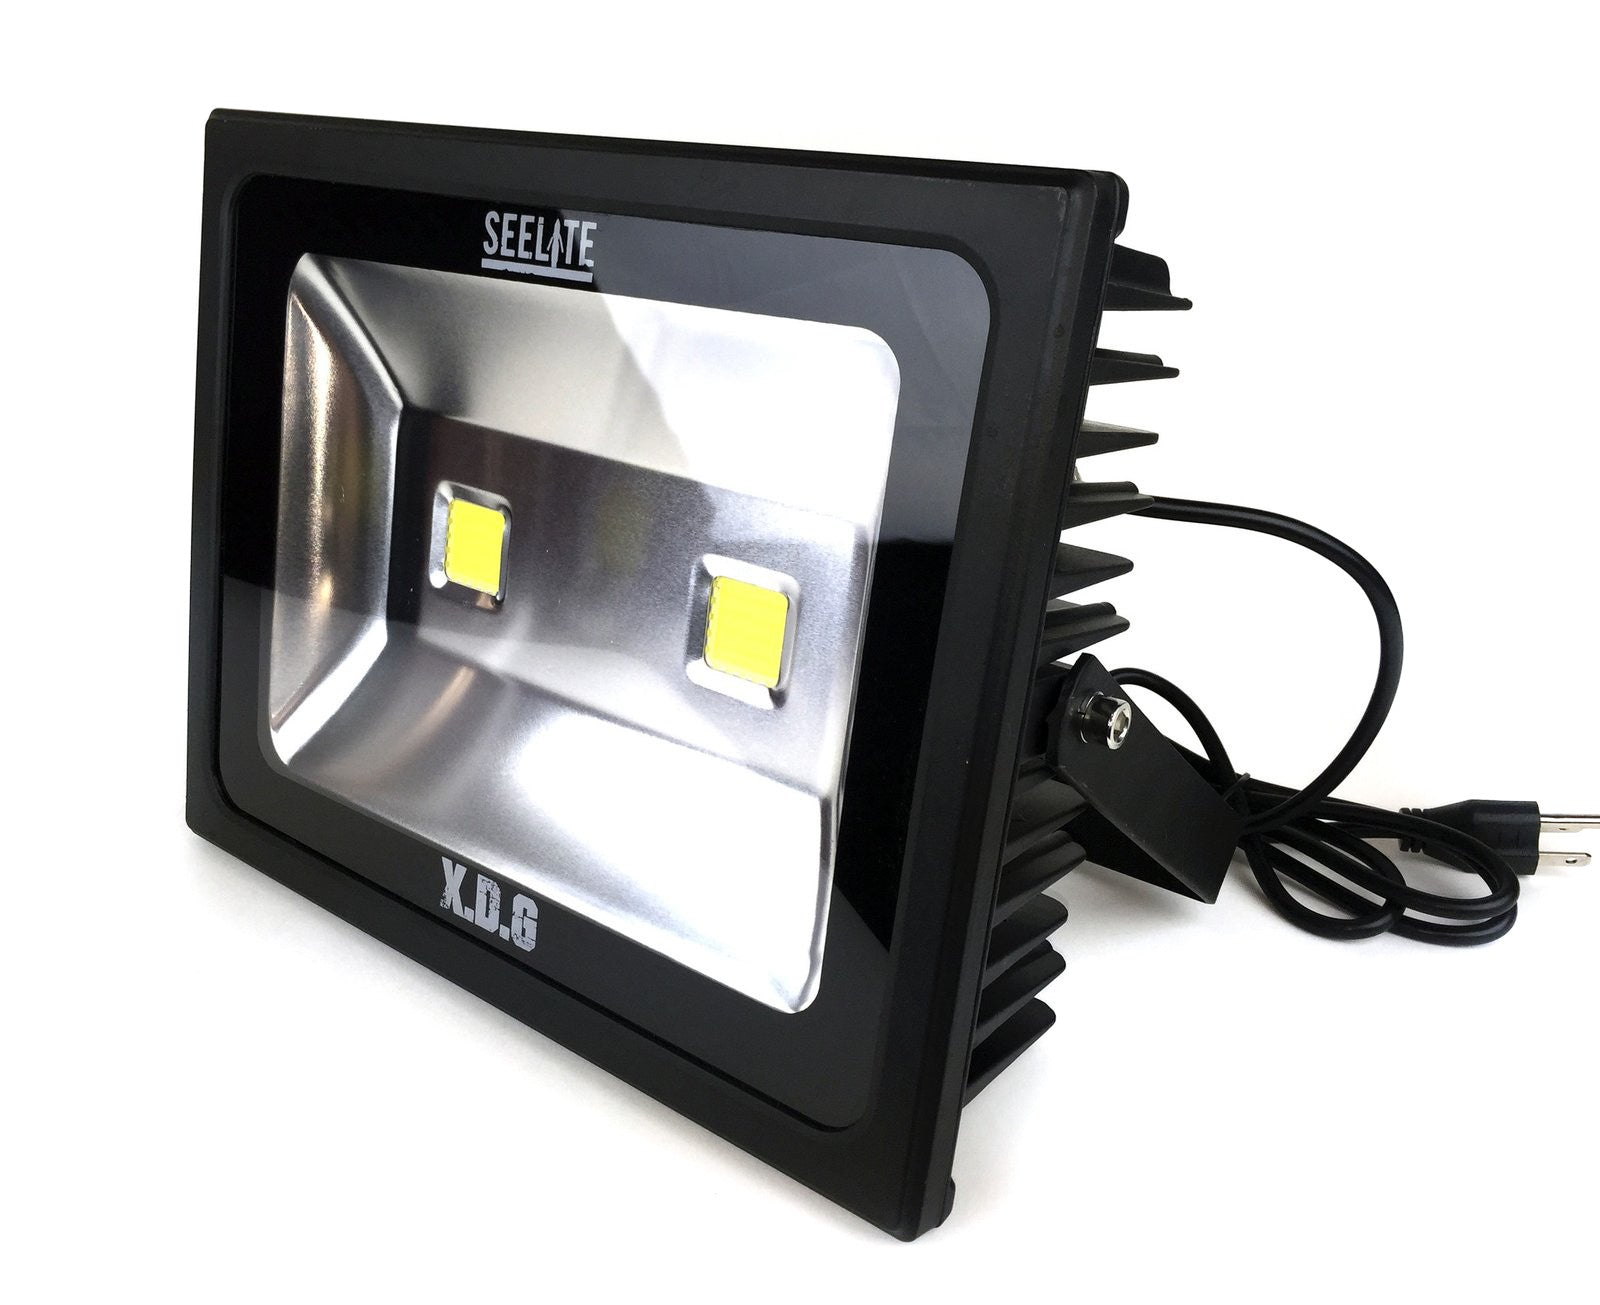 100 Watt True Warm LED Flood Light w/ X.D. Glass